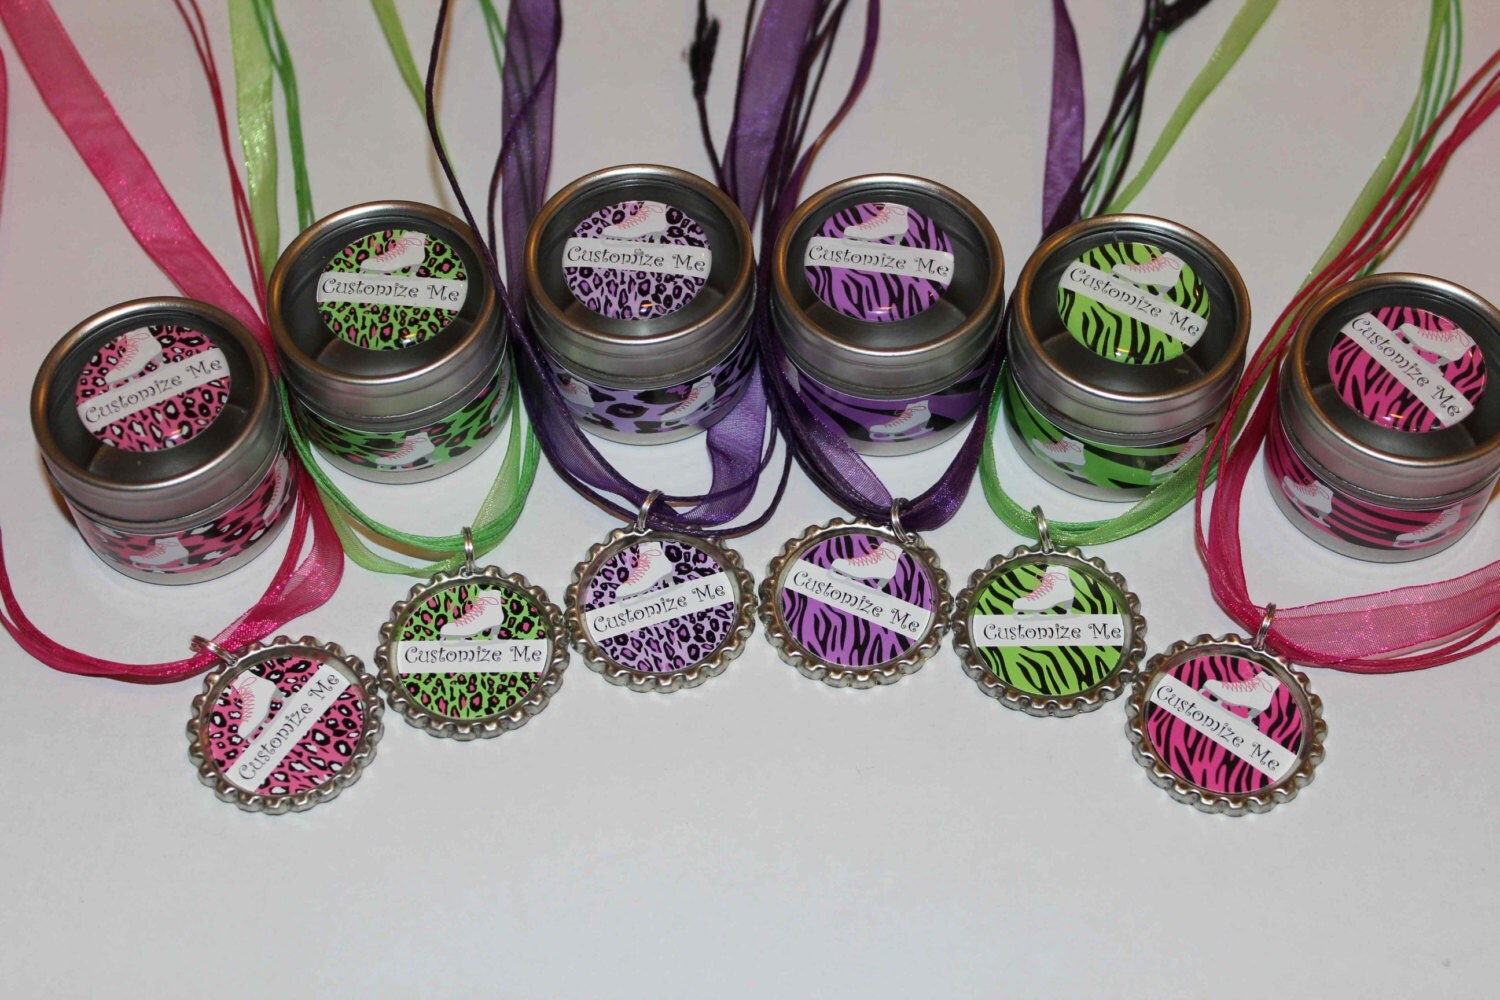 Roller skating party favors